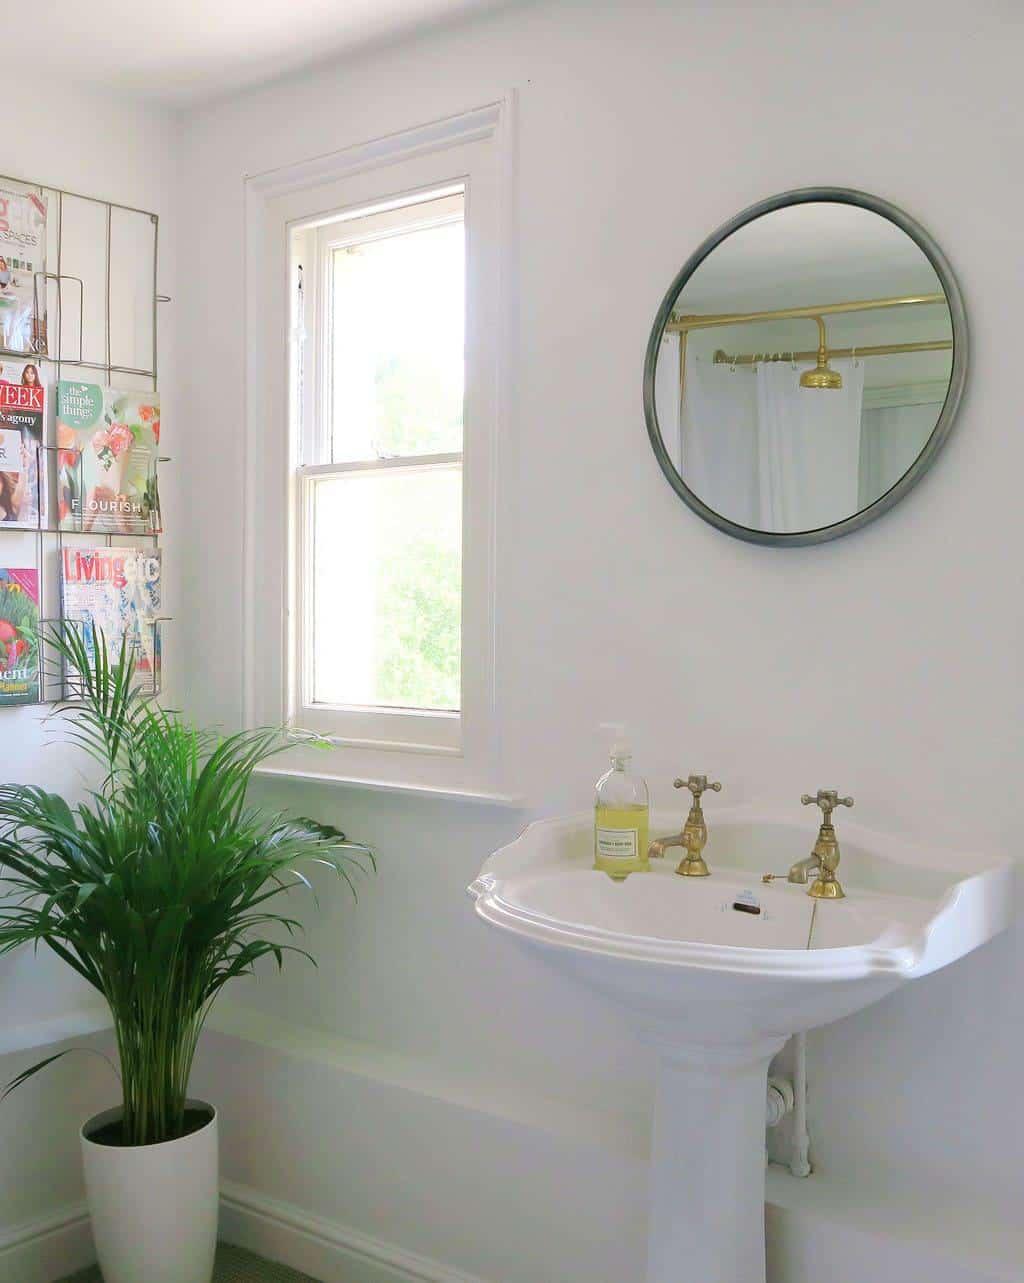 5 tips for a simple bathroom makeover by The Twinkle Diaries